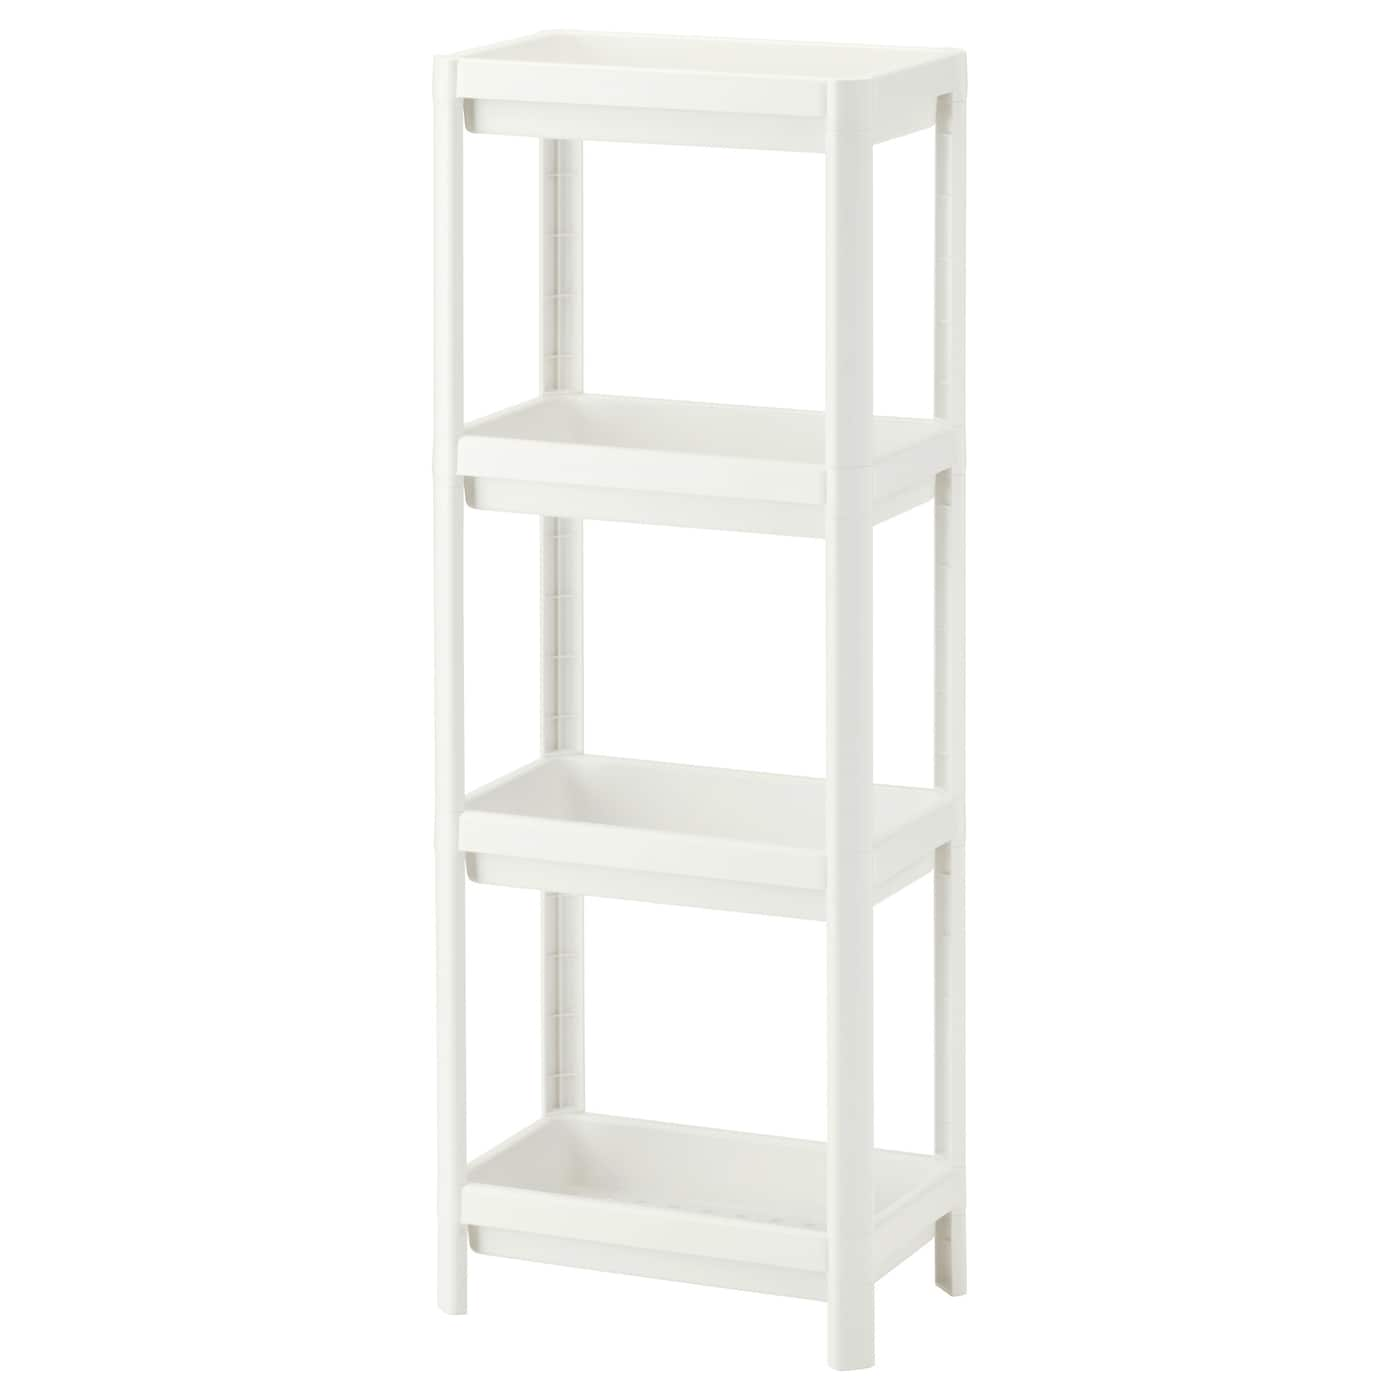 Bathroom storage bathroom storage ideas ikea for Etagere 50 cm de large